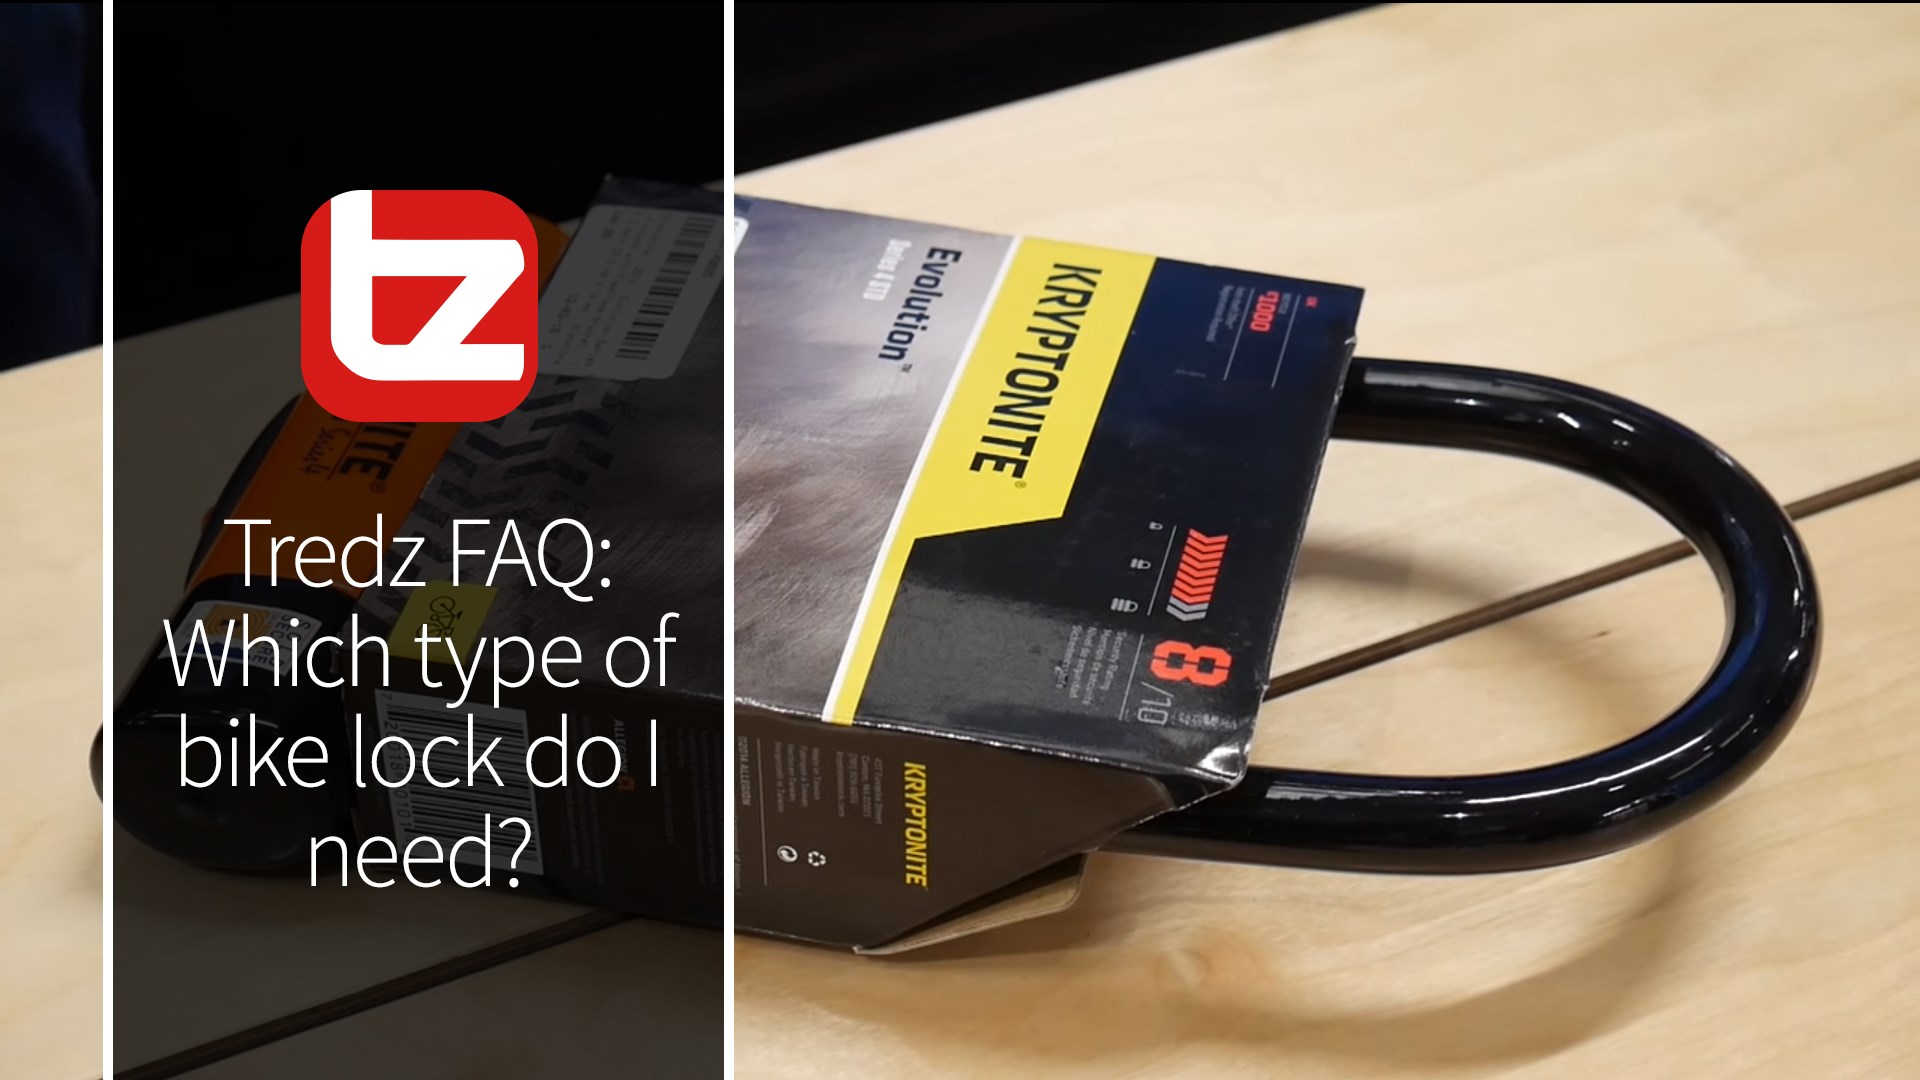 Tredz FAQ: Which type of bike lock do I need?